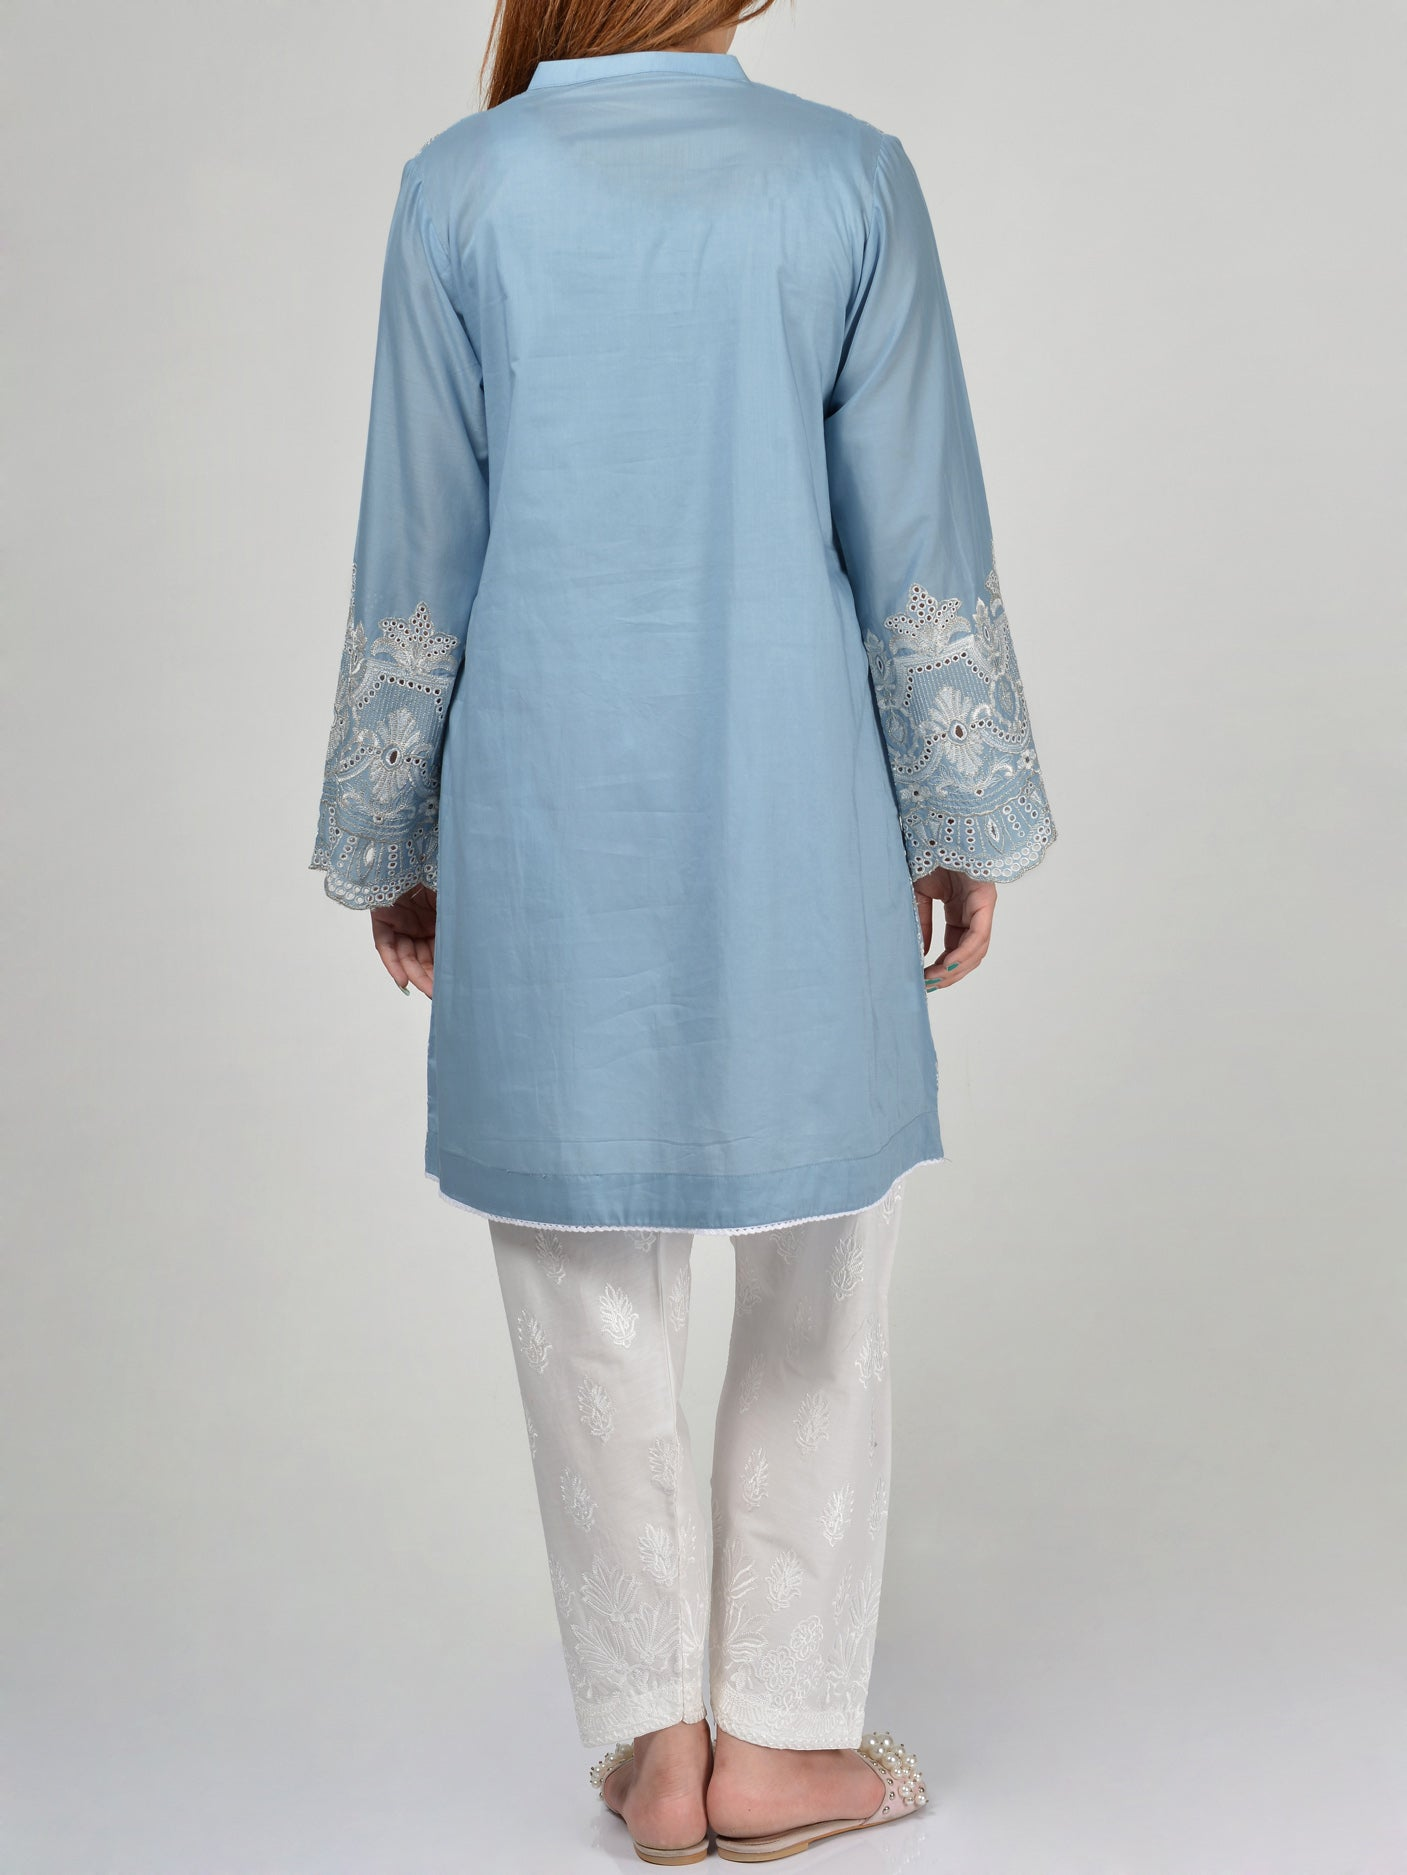 Pret Embroidered Lawn Shirt Online P0090